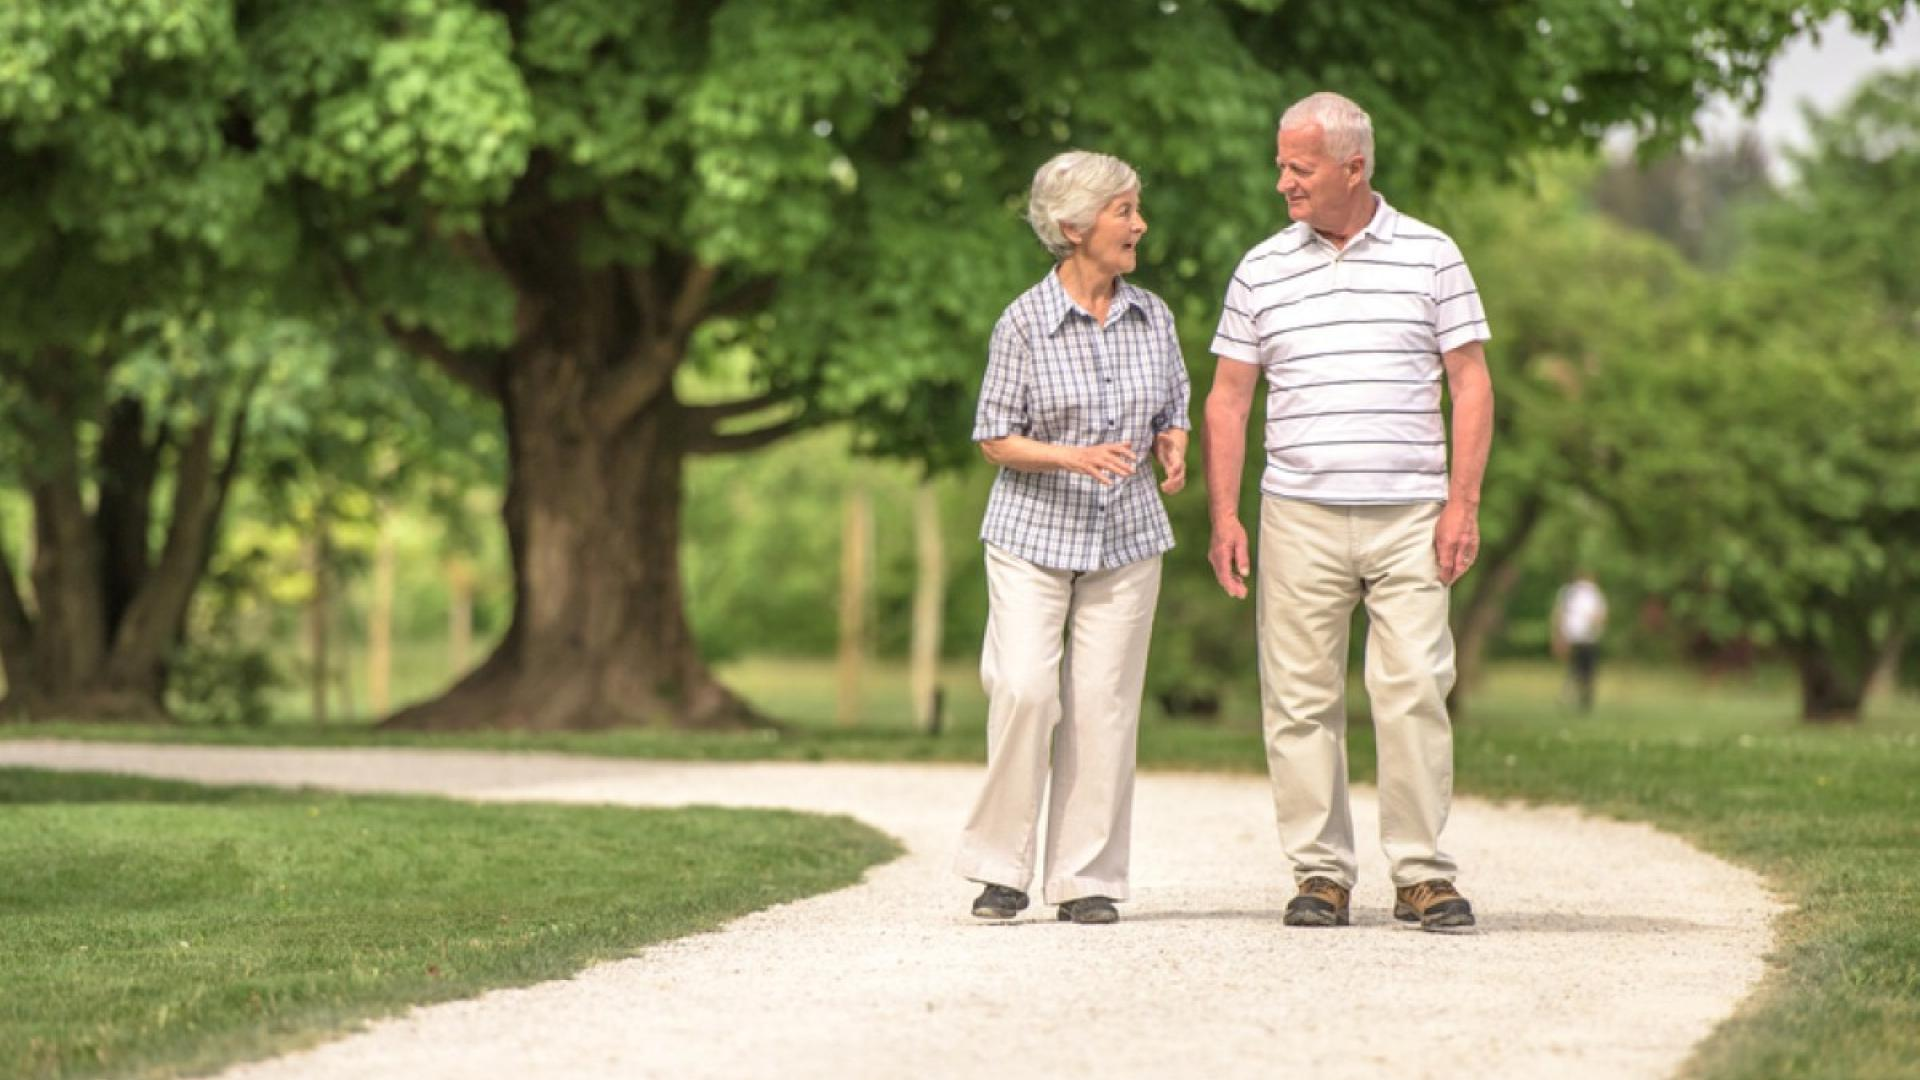 Poor balance can suggest dementia risk